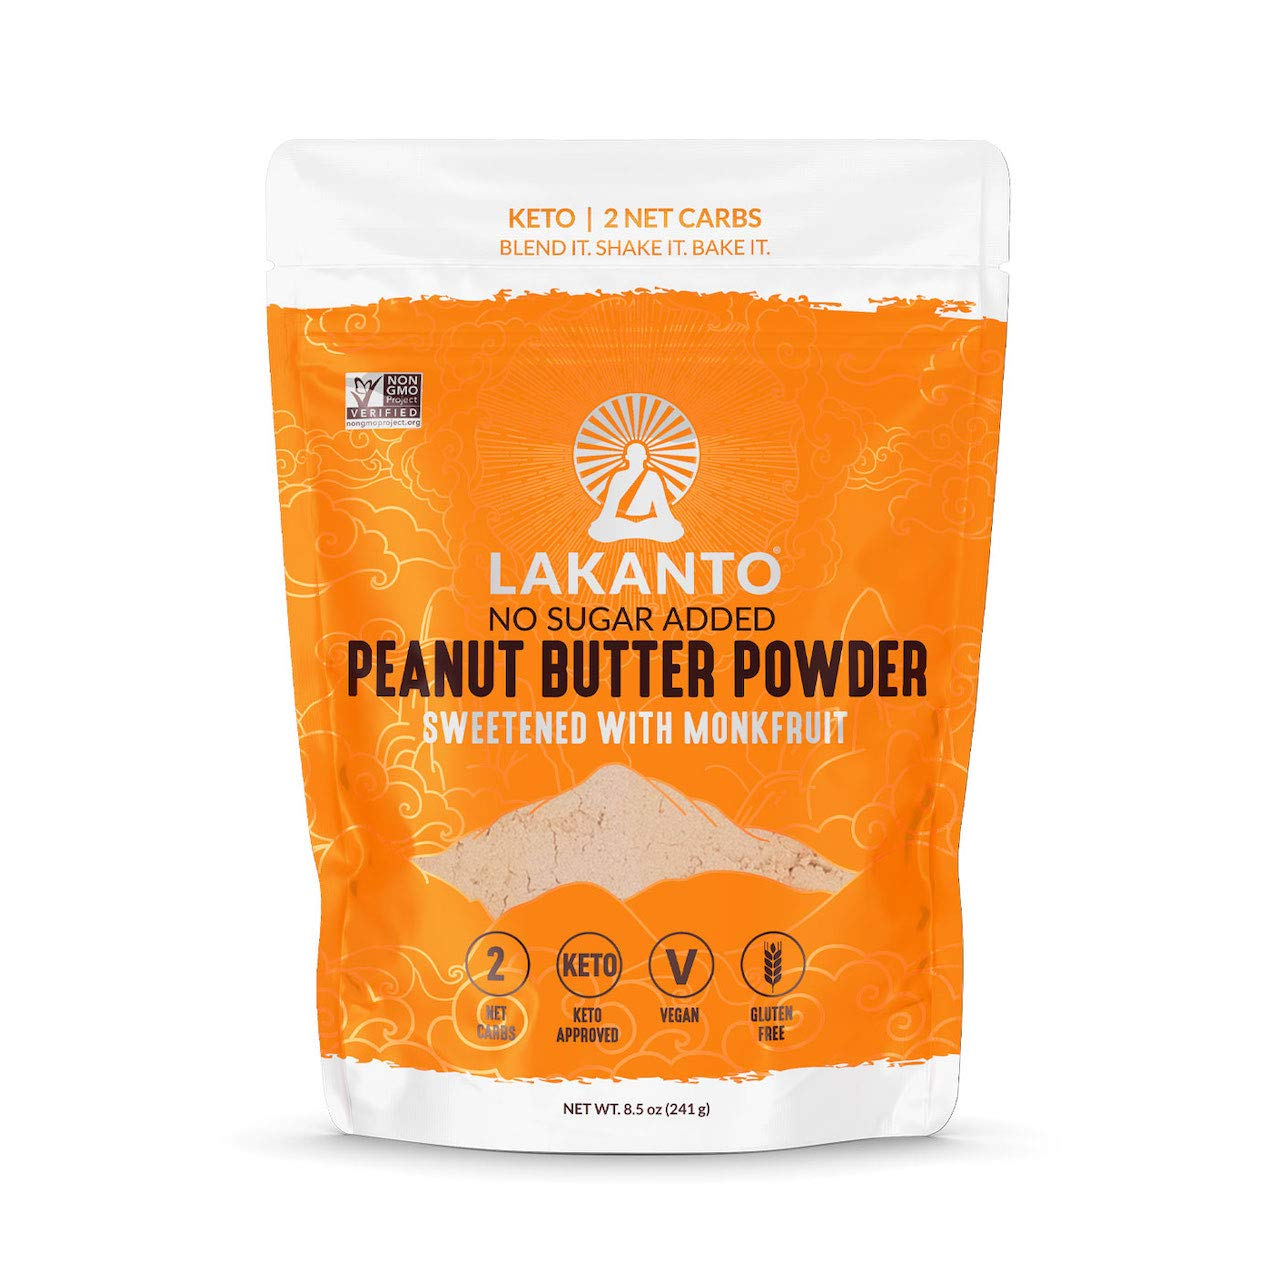 Lakanto Peanut Butter Powder, 2 Net Carb Keto Powdered Peanut Butter, Sugar Free, Vegan, Gluten Free for Smoothies, Cookies, Sauces and Cooking, Naturally Sweetened with Monkfruit (8.5 Ounce)